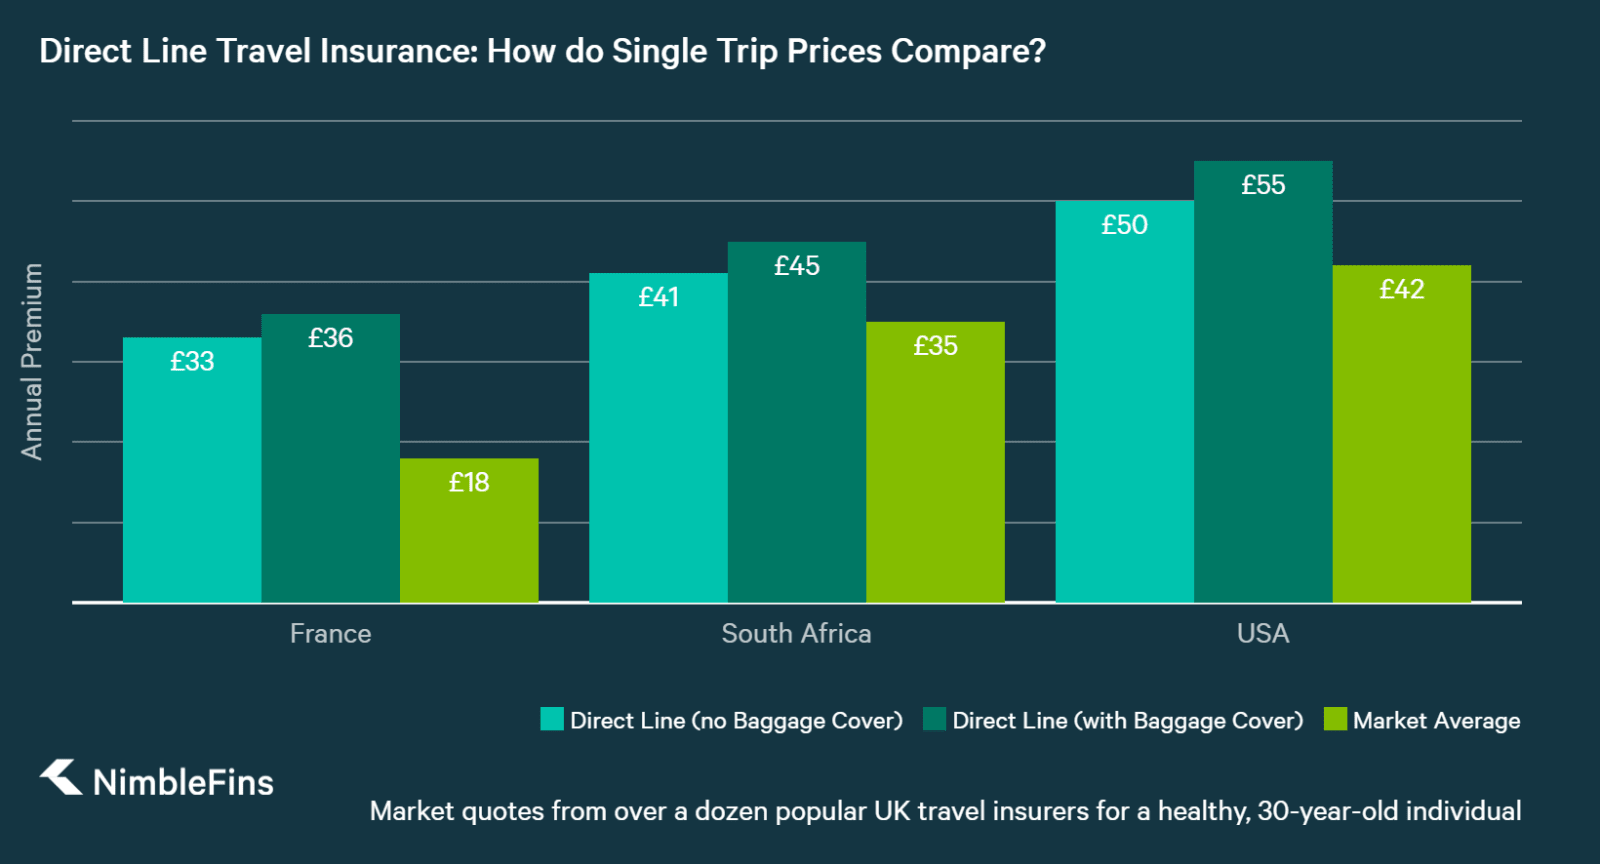 chart showing Direct Line single-trip travel insurance prices and value compared to the market